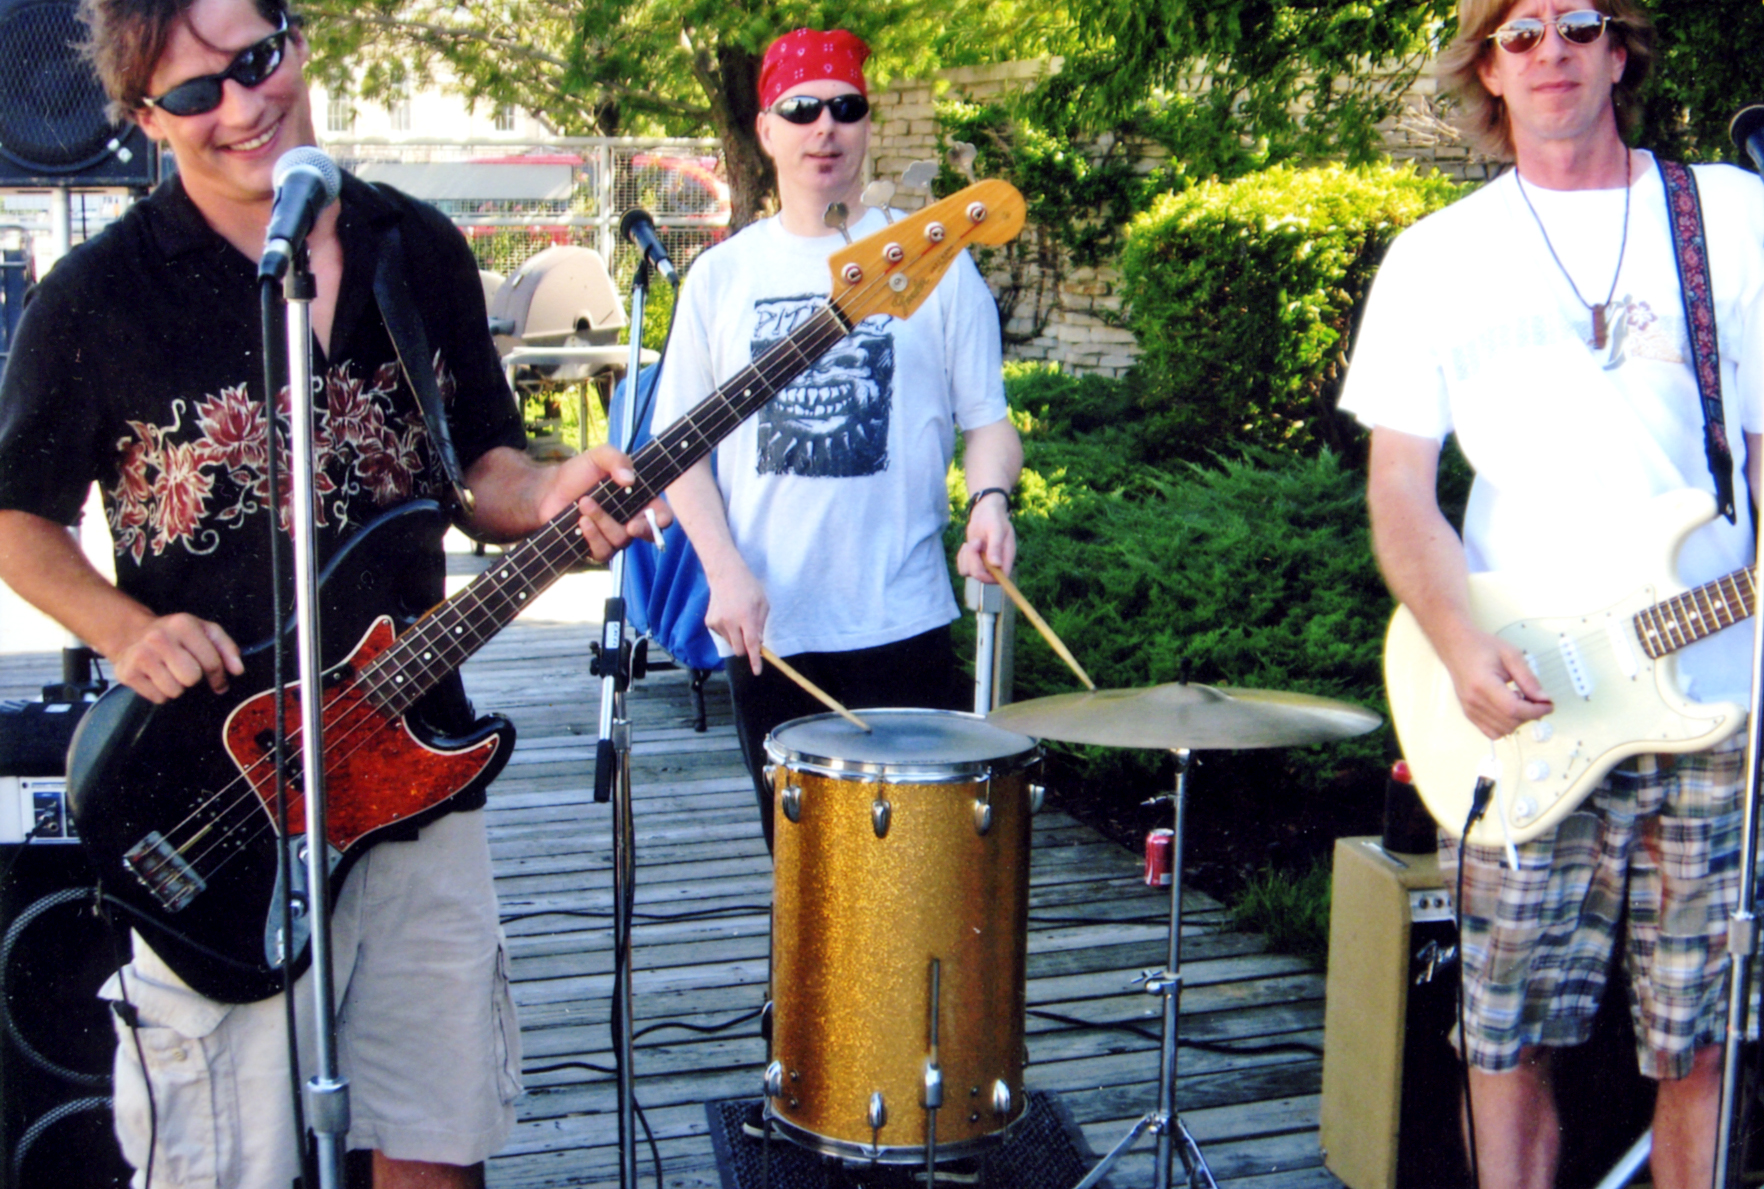 Band playing at dock